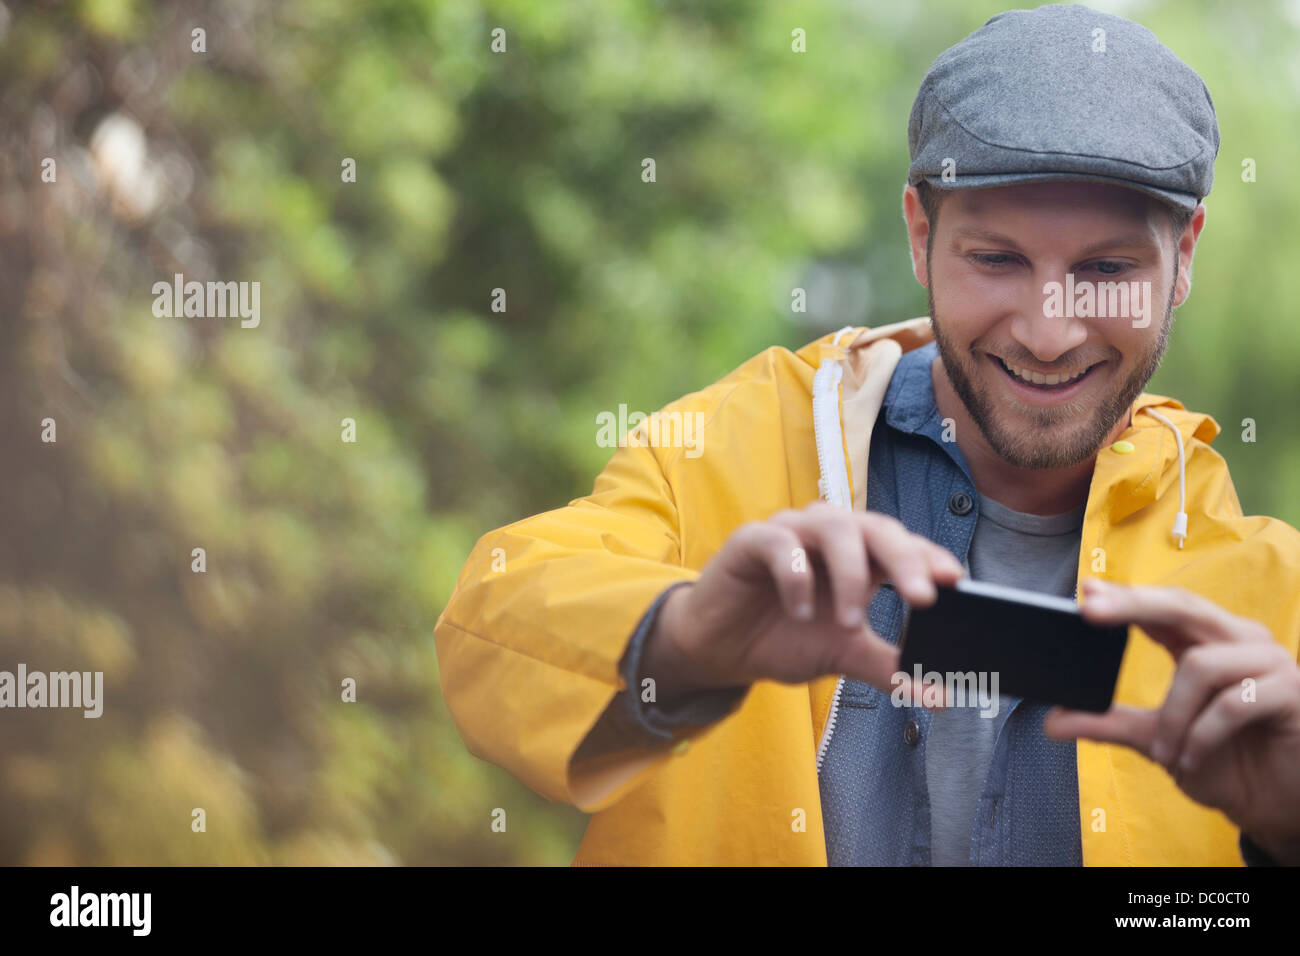 Happy man taking photograph with camera phone - Stock Image